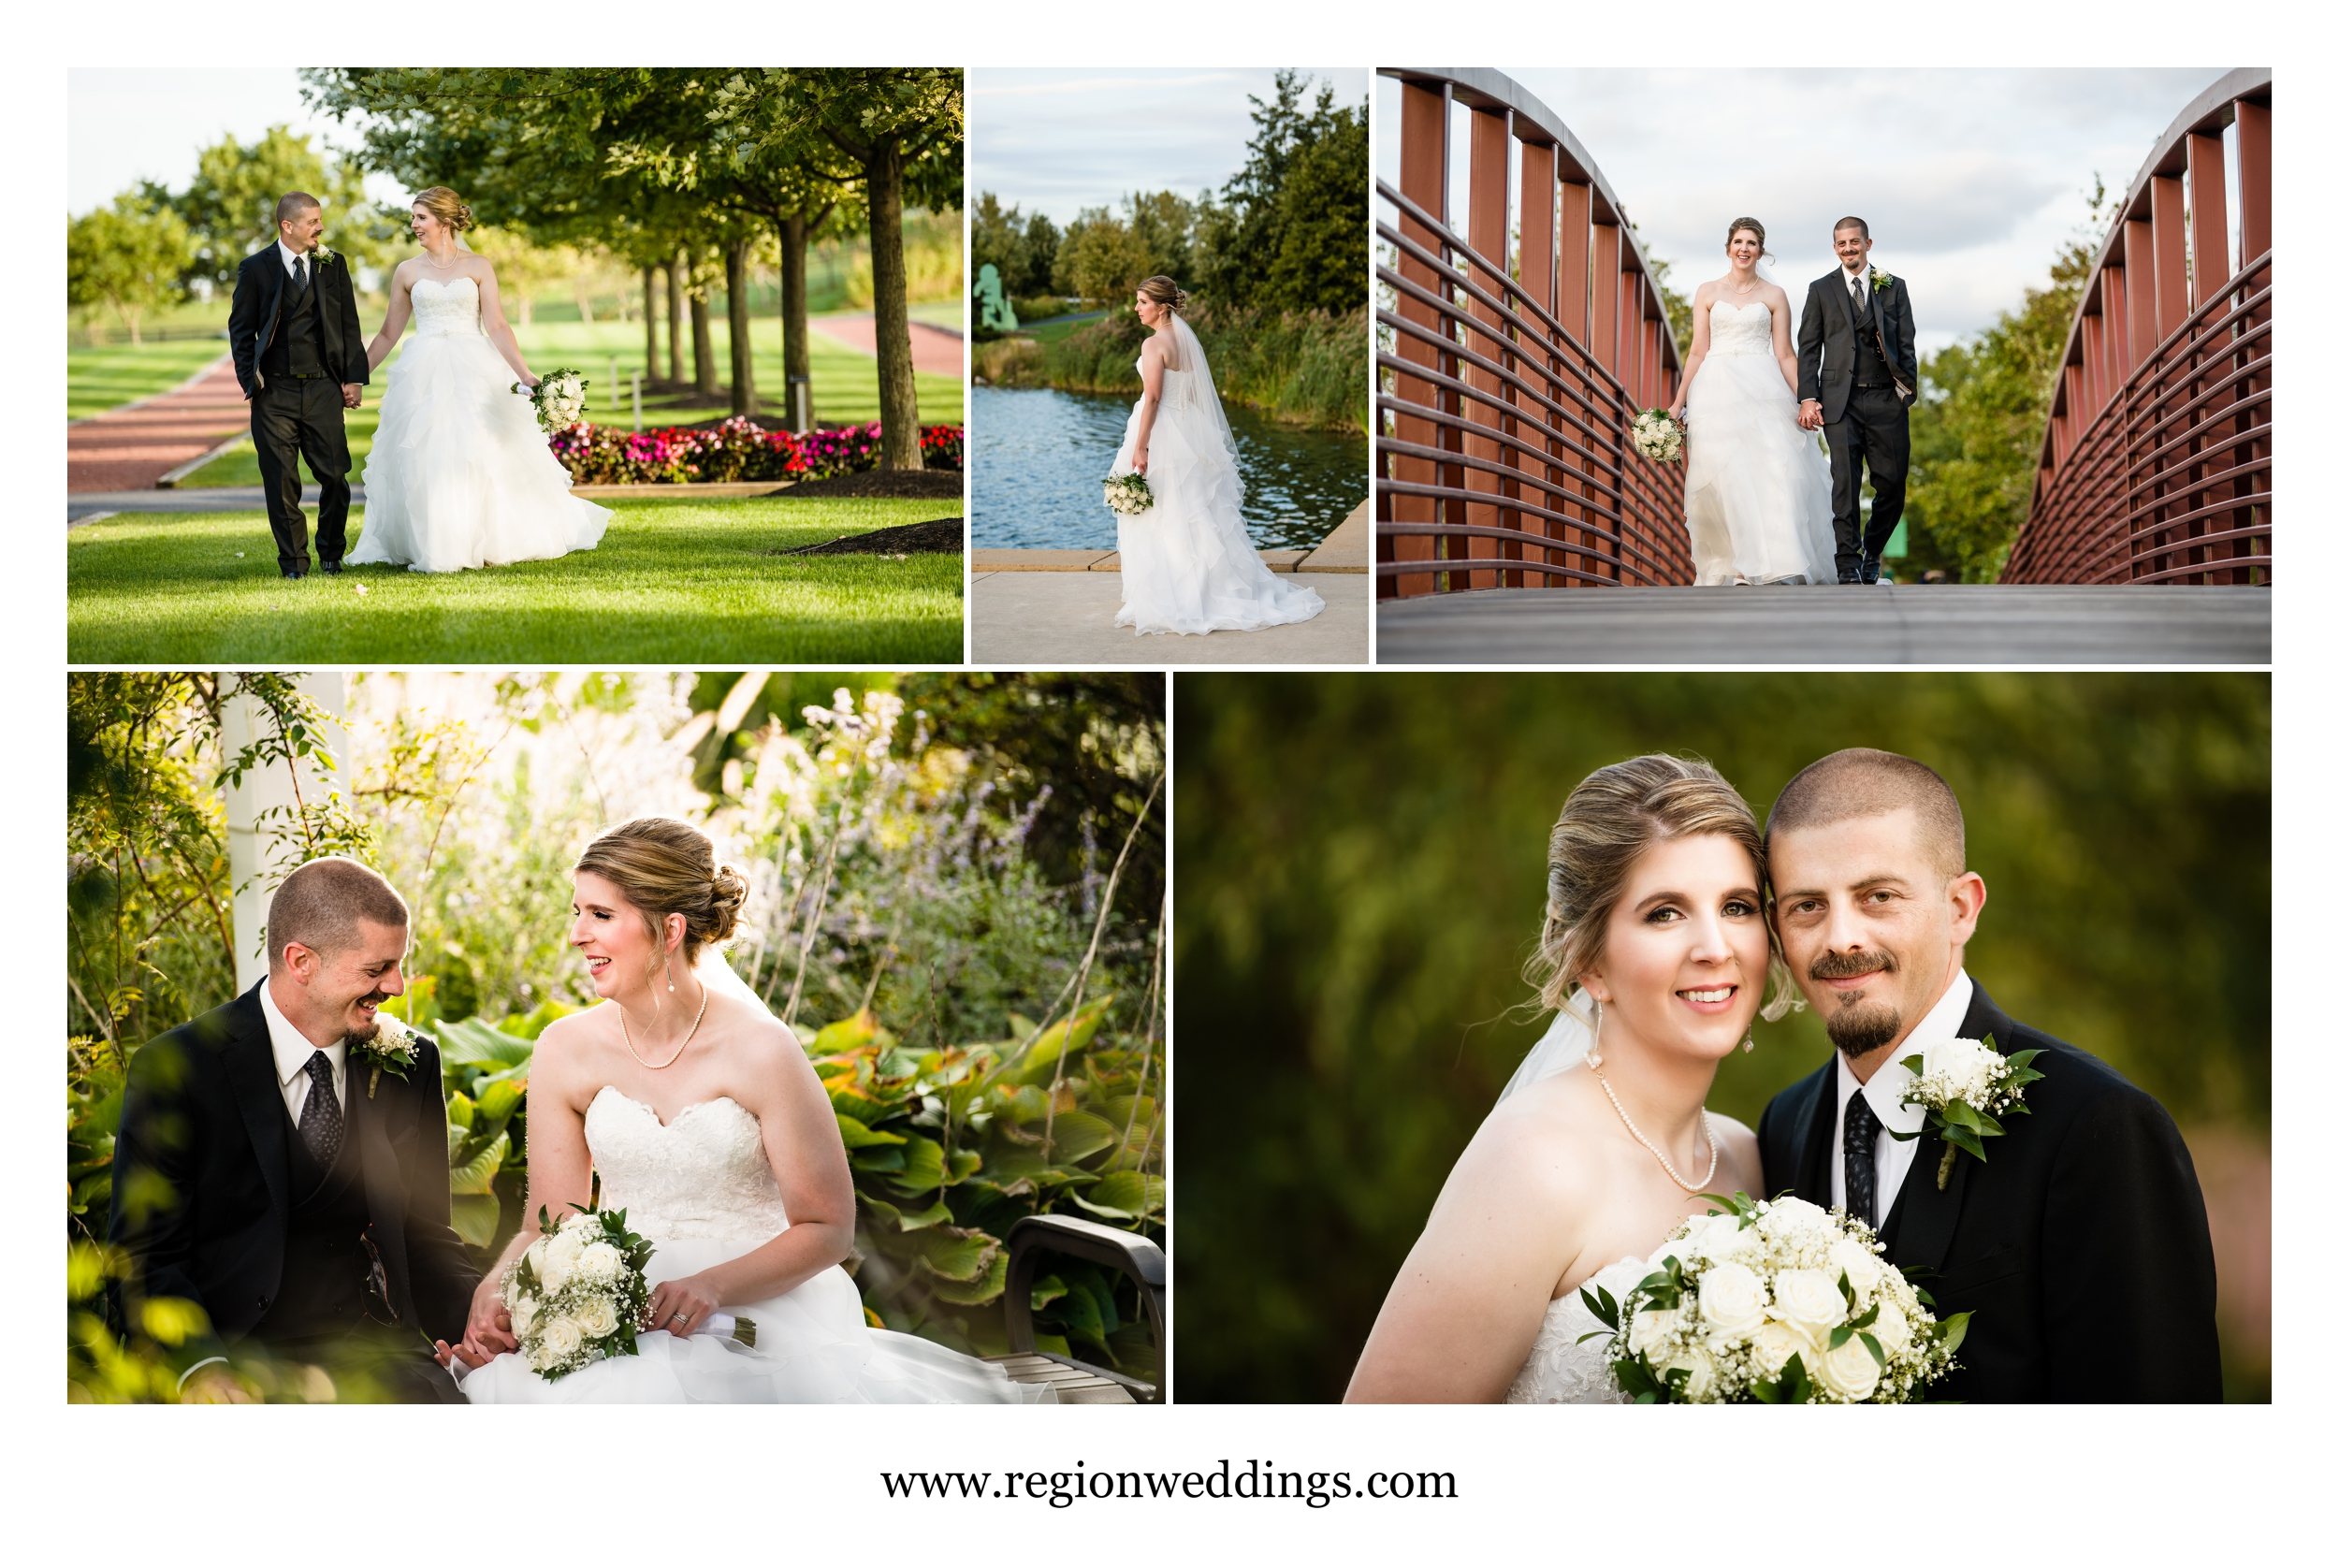 A collage of wedding portraits at Centennial Park.